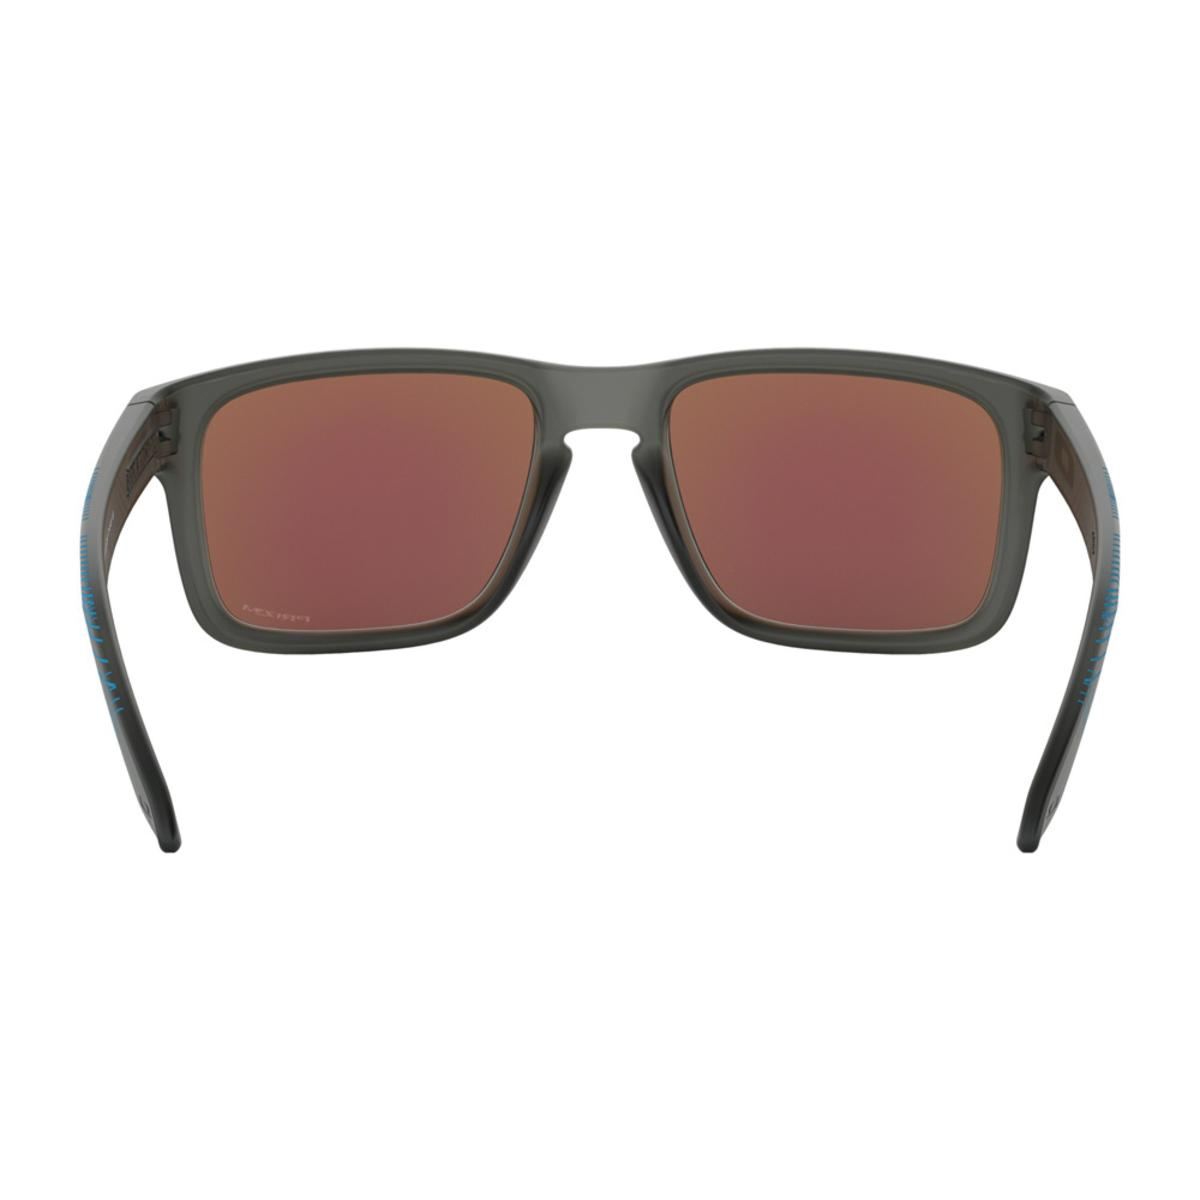 24f7df215e Oakley Holbrook Aero Grid Collection Matte Gray Smoke Sunglasses w Prizm  Sapphire - The Warming Store